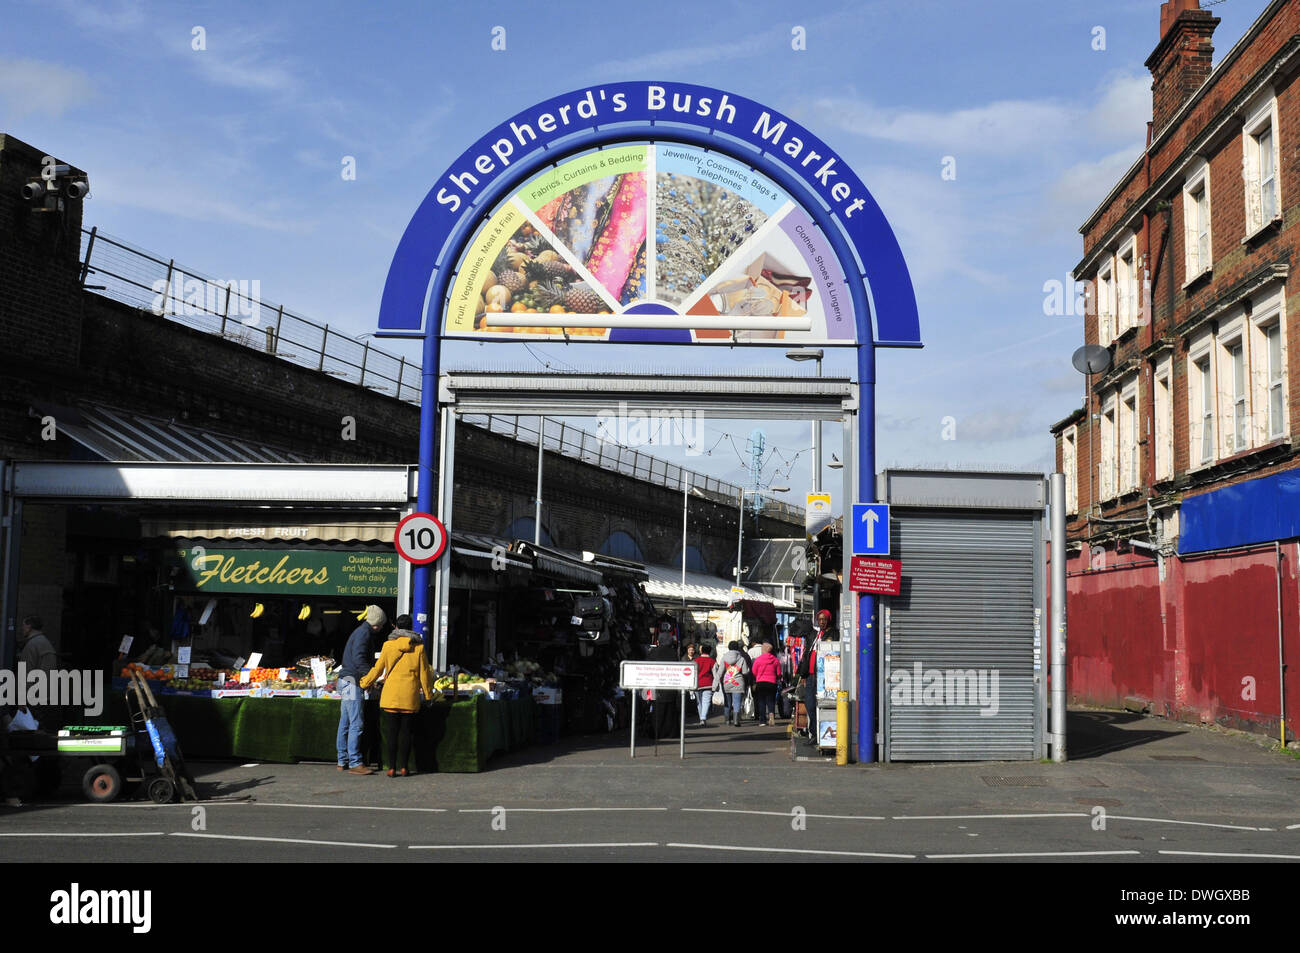 A view of the entrance of Shepherd's Bush market, London, UK - Stock Image